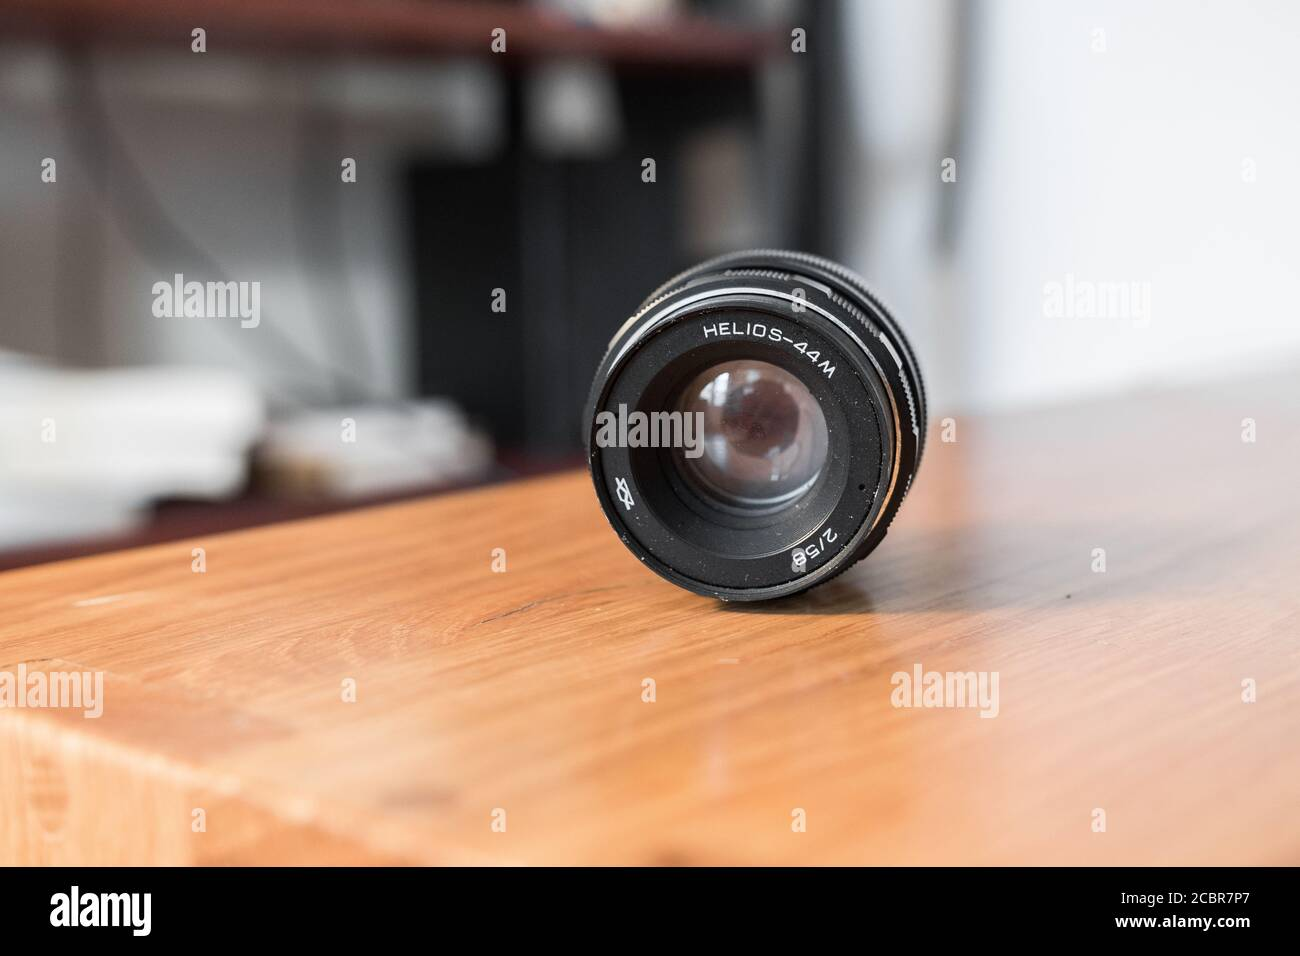 Swirly Bokeh High Resolution Stock Photography And Images Alamy